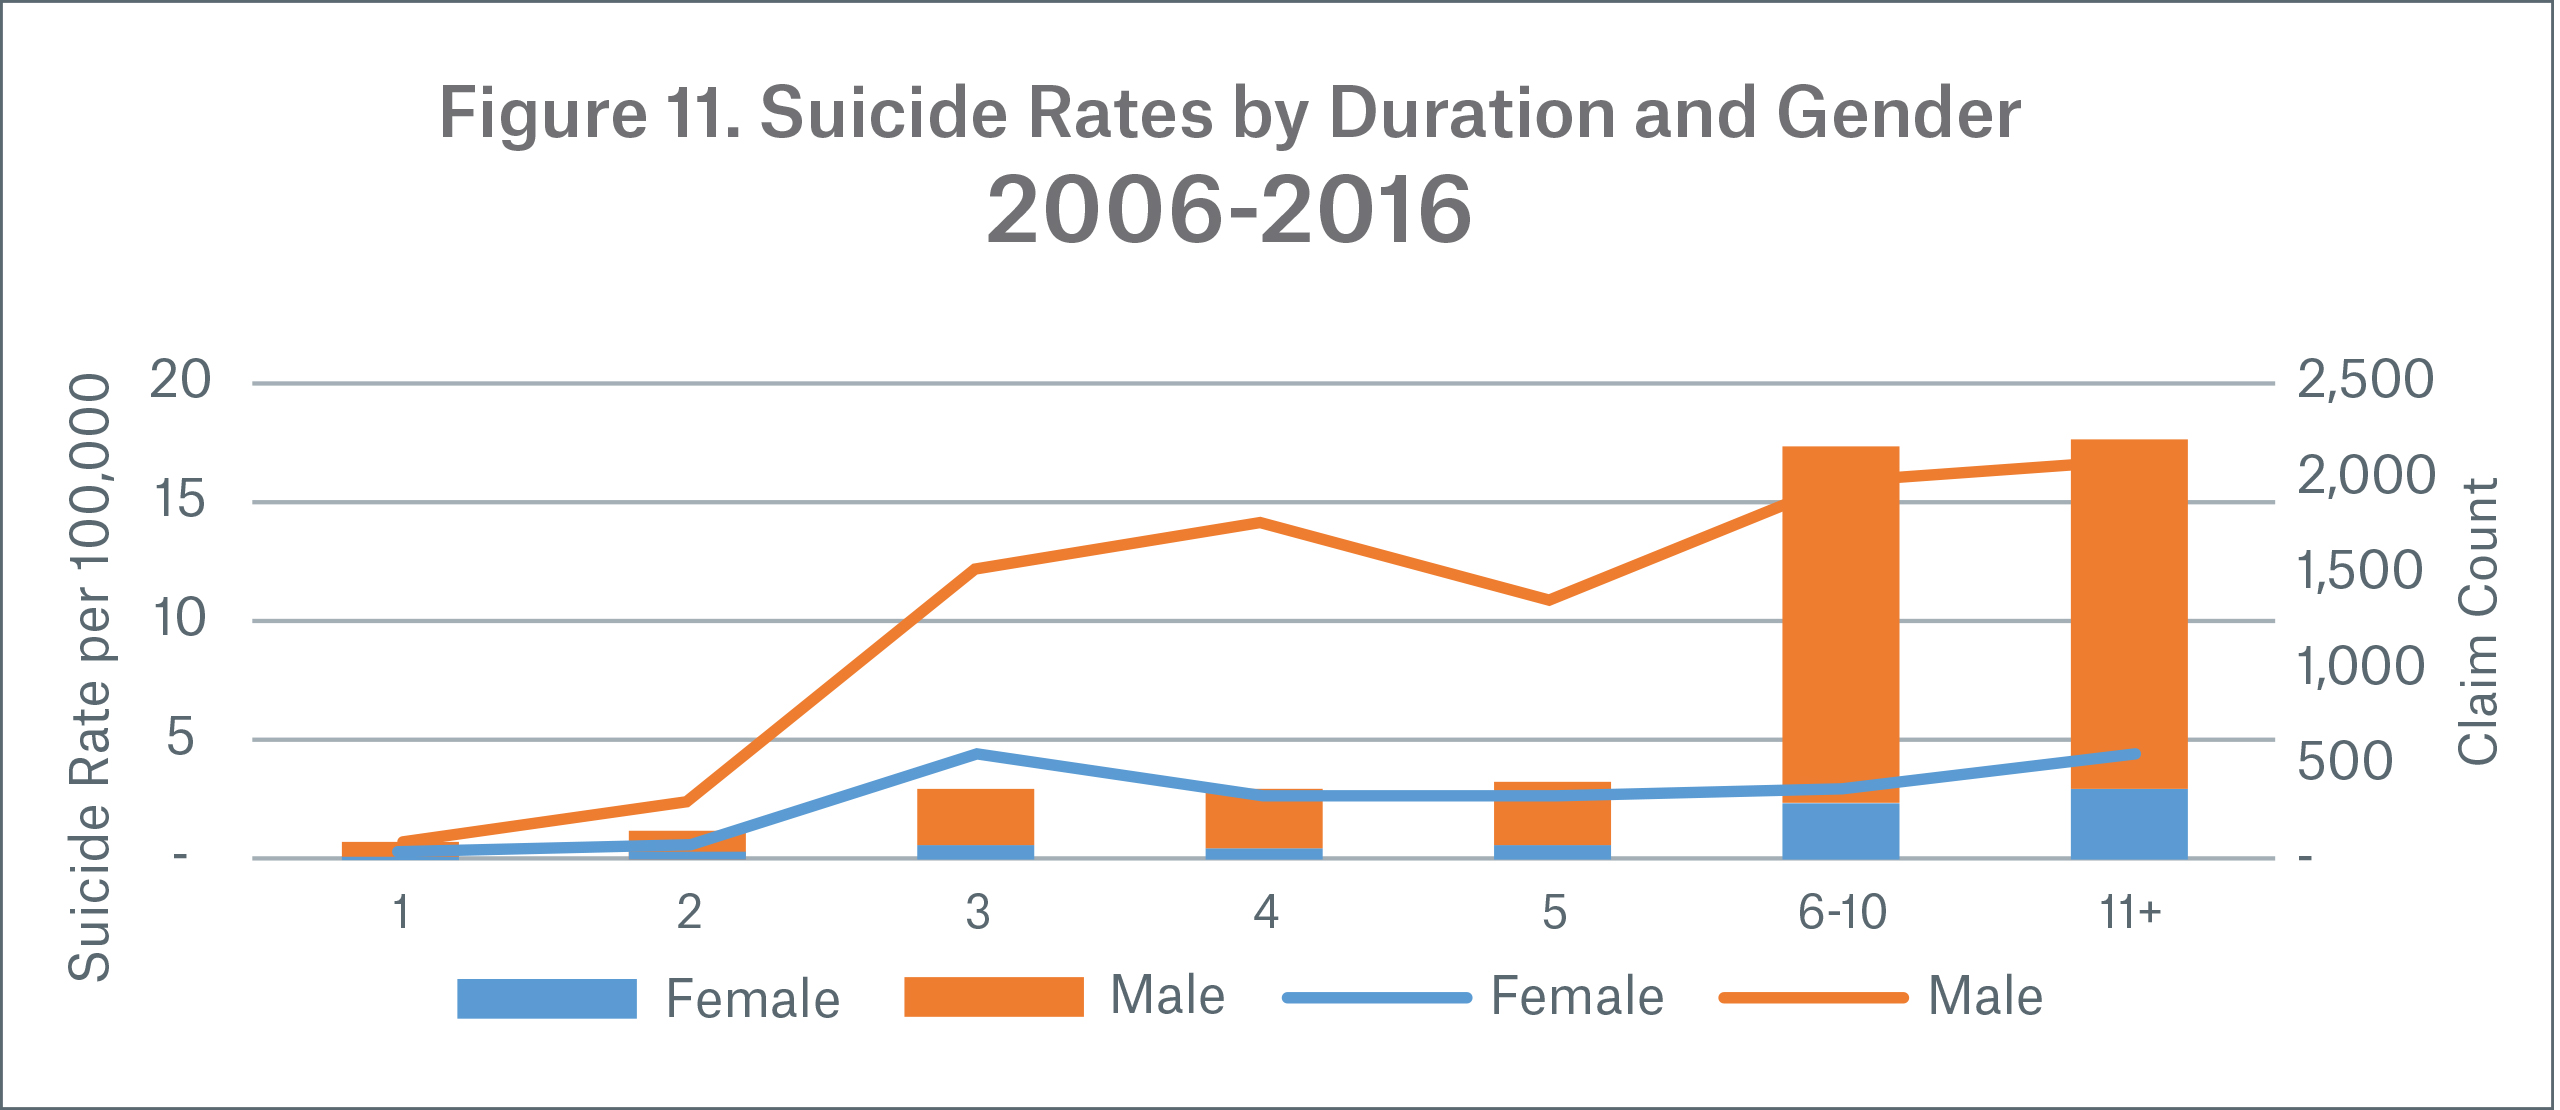 Figure 11 Image Suicide Rates by Duration and Gender